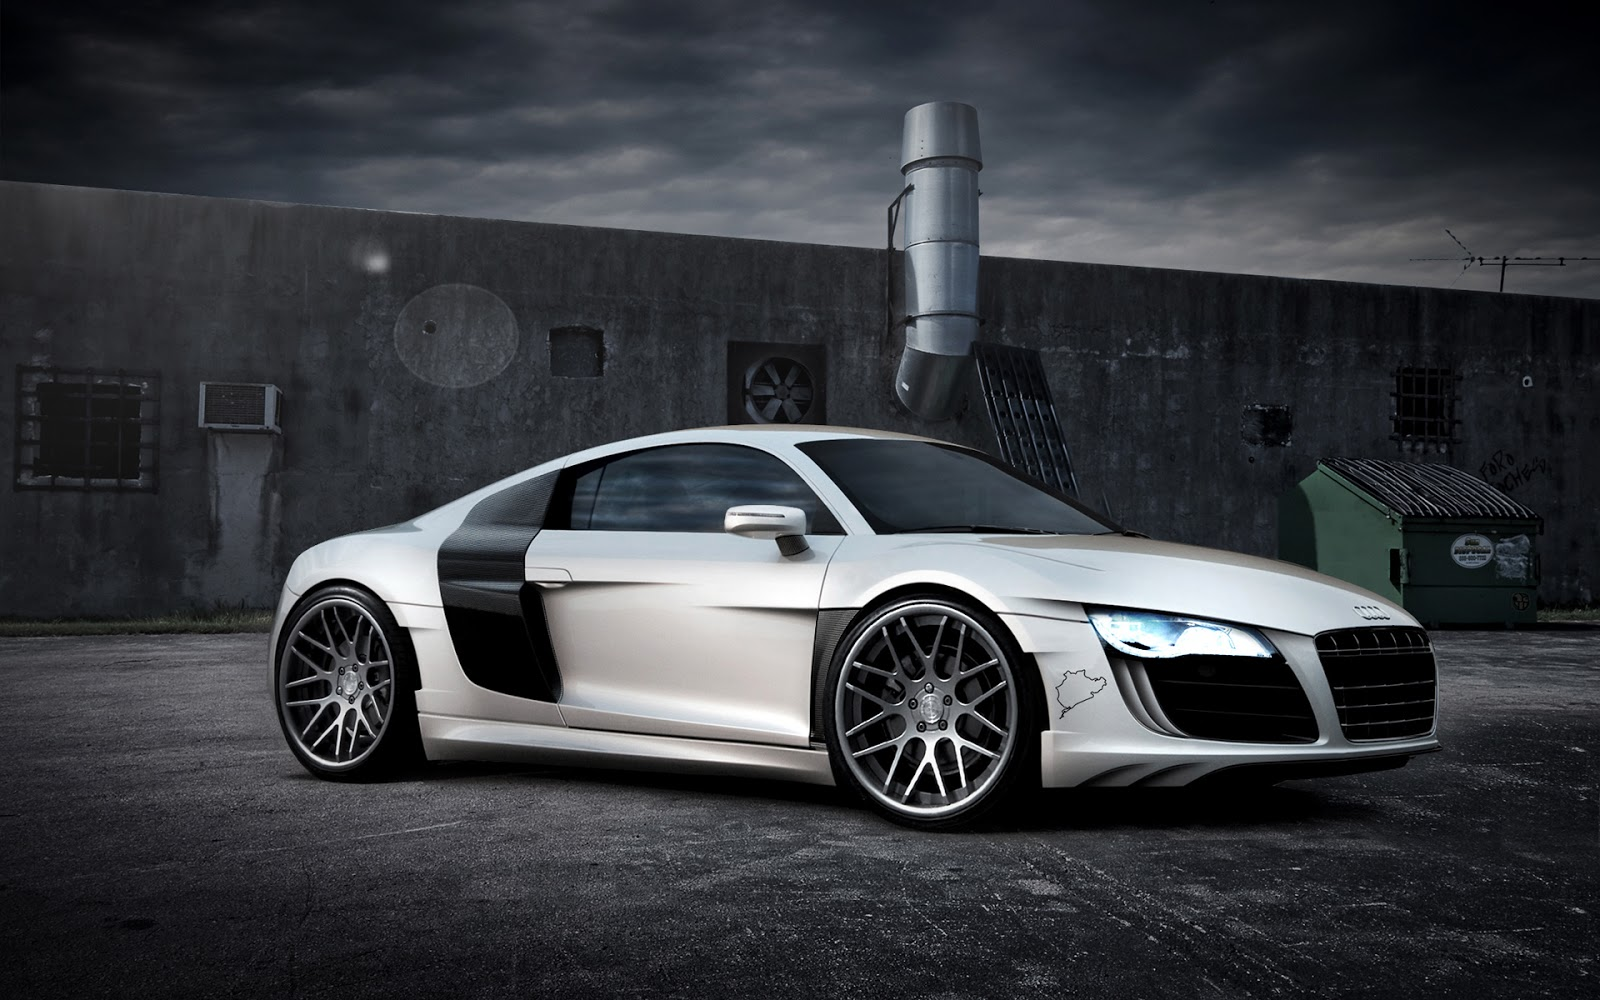 Cool Cars HD Wallpapers Cool Cars HD Wallpapers Check out the cool 1600x1000